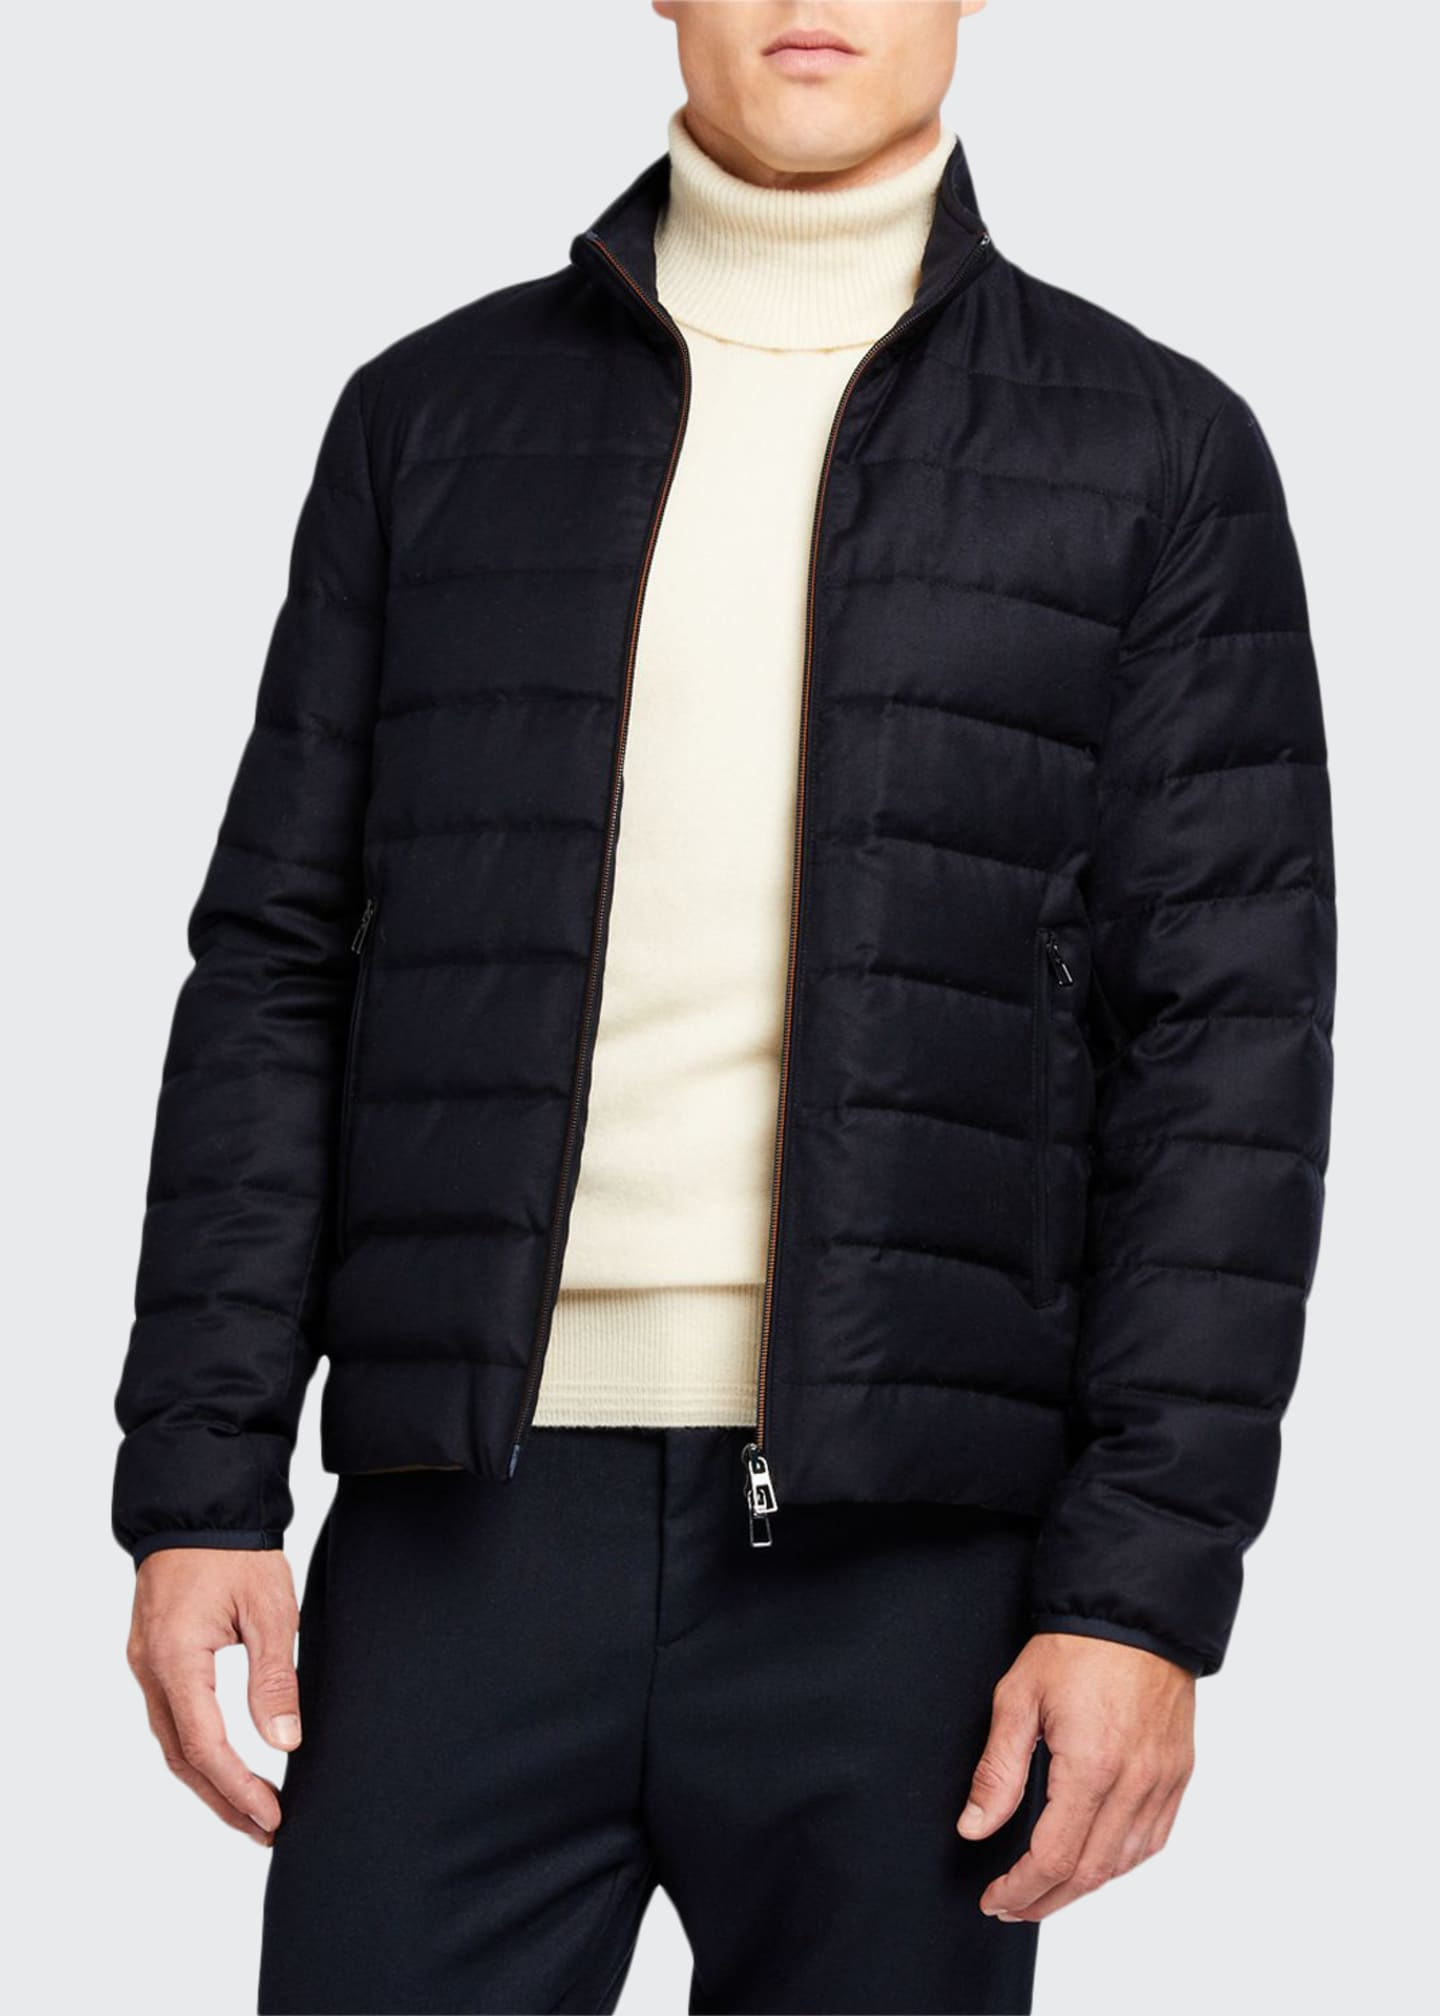 Loro Piana Men's Zip-Front Puffer Jacket